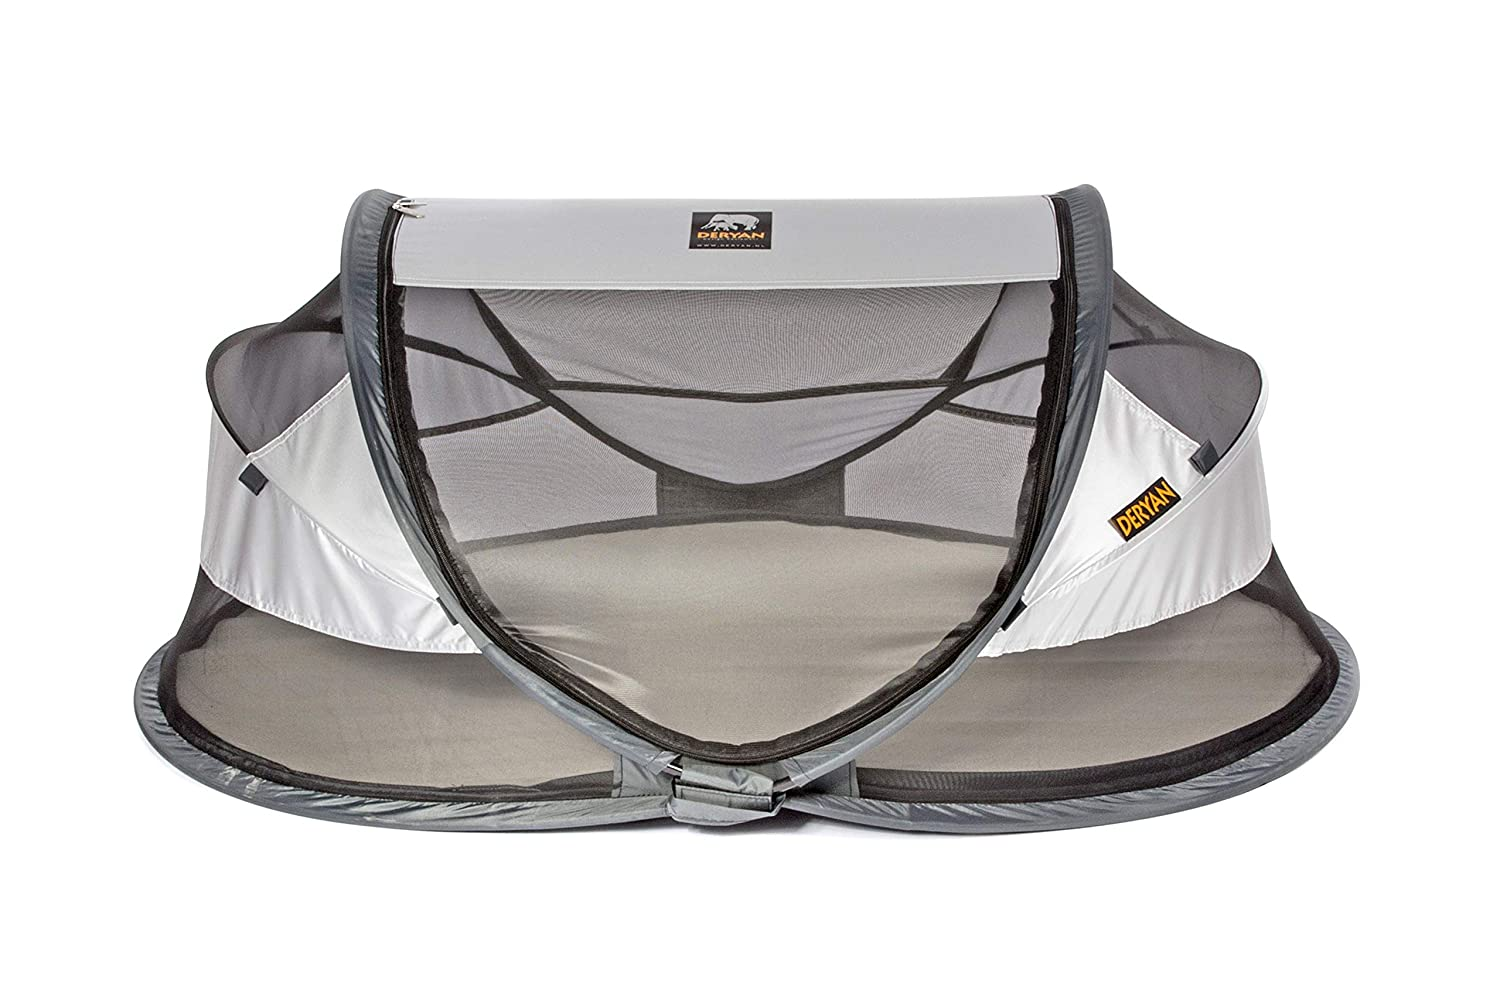 Deryan Peuter Bed.Deryan Travel Cot Travel Cot Baby Luxe Travel Tent Including